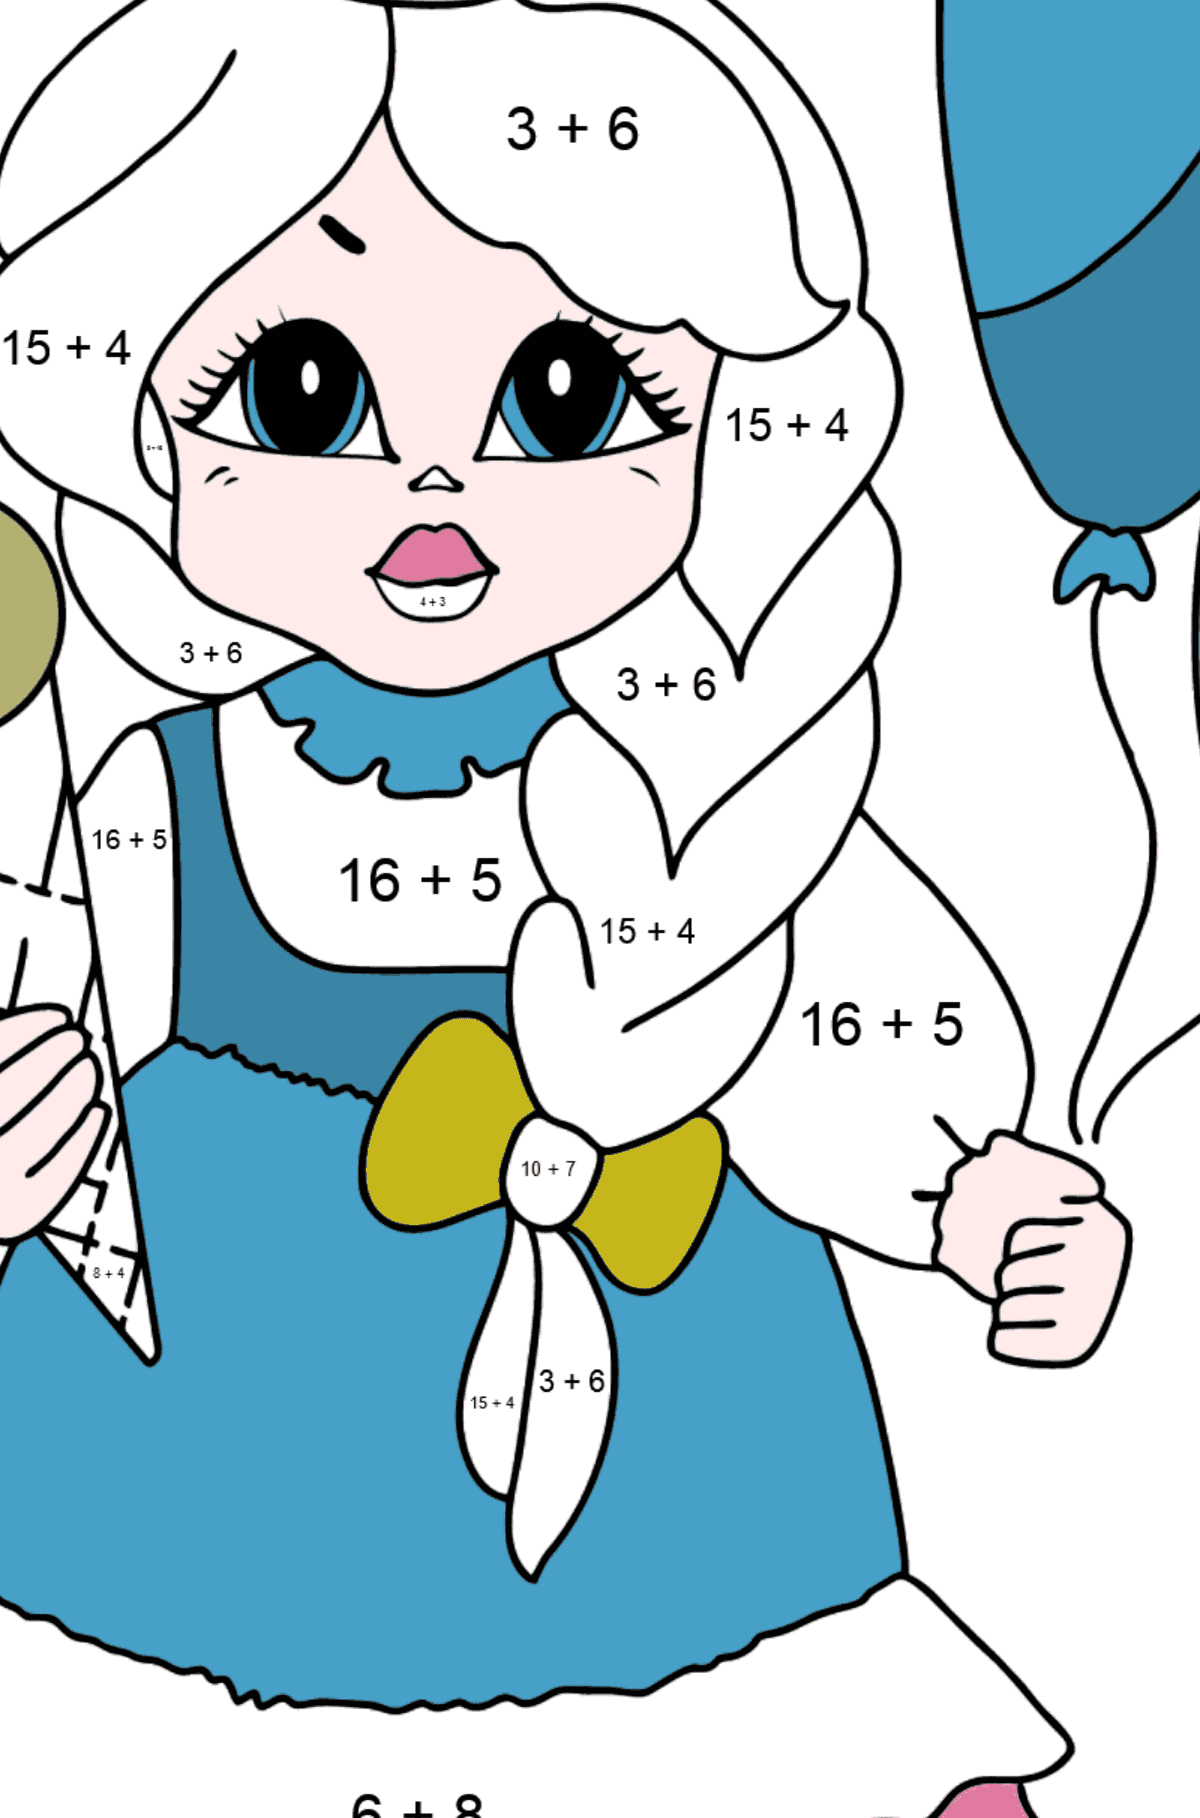 Coloring Page - A Princess with Ice Сream - For Girls - Math Coloring - Addition for Kids